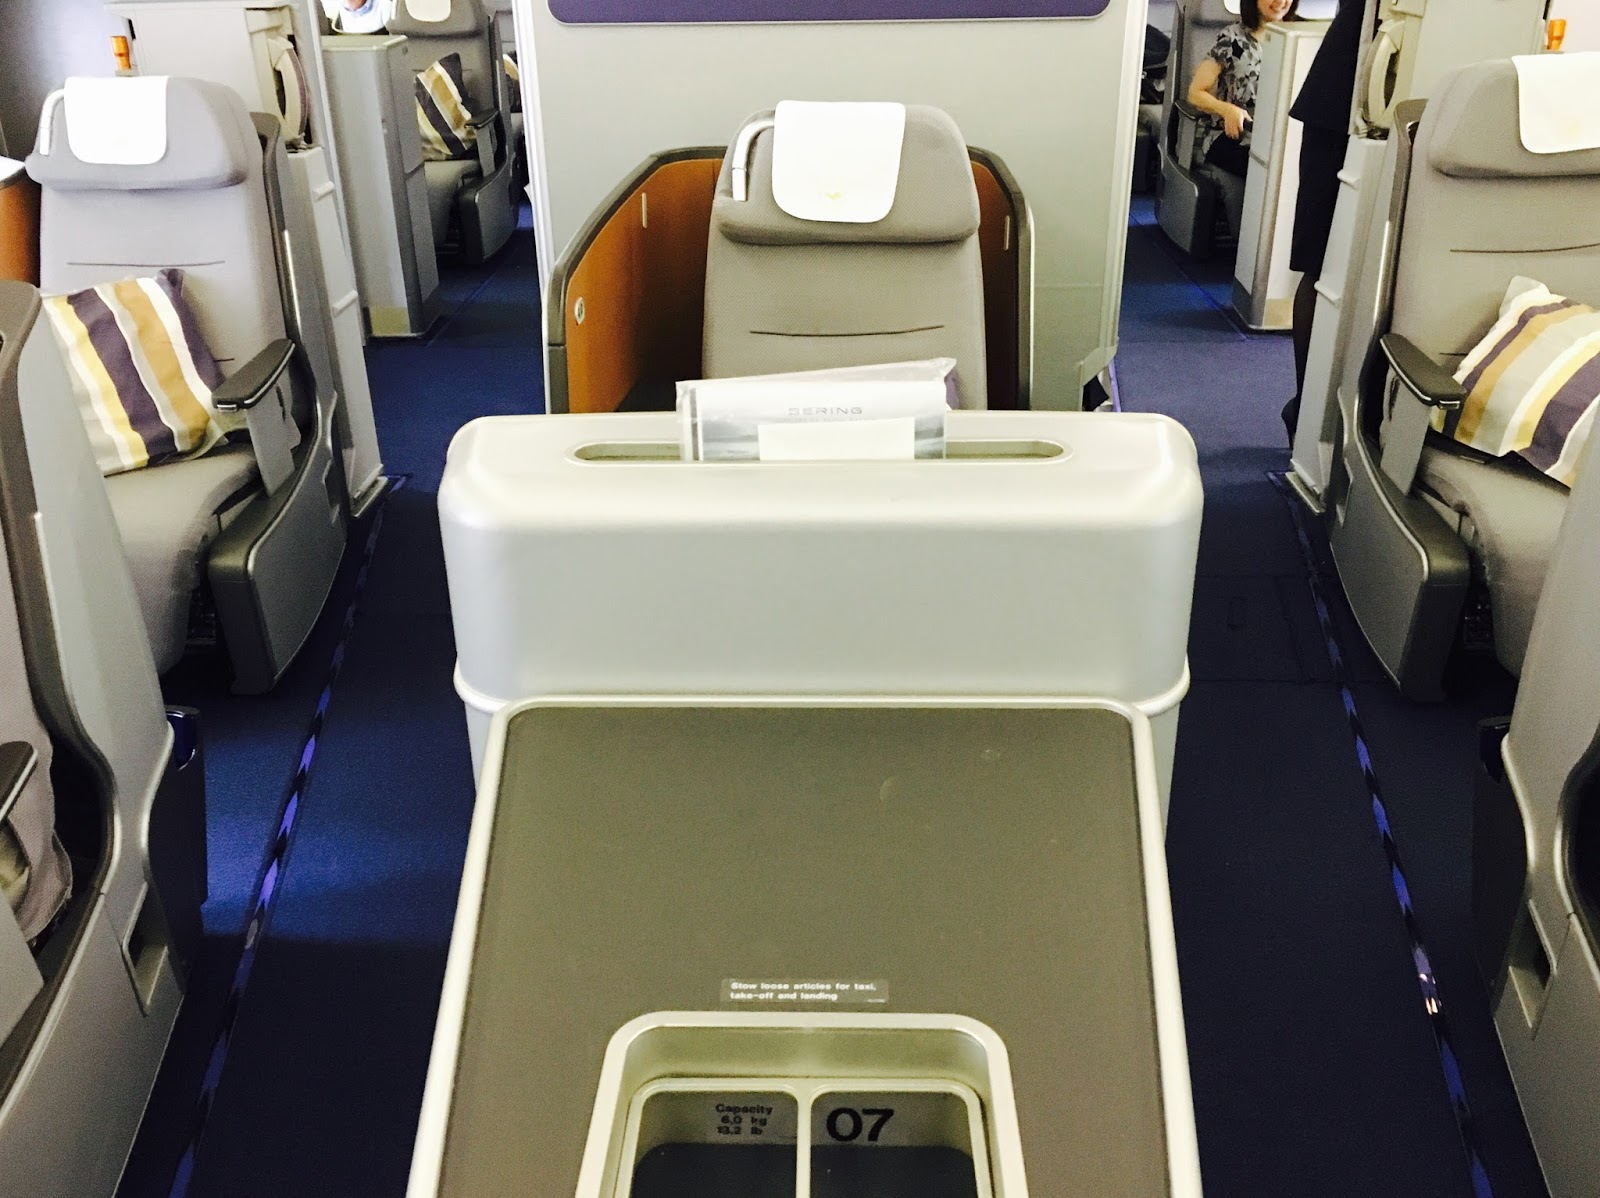 Fantastic Flight Review Lufthansa Lh490 Business Class 747 Frankfurt Gmtry Best Dining Table And Chair Ideas Images Gmtryco